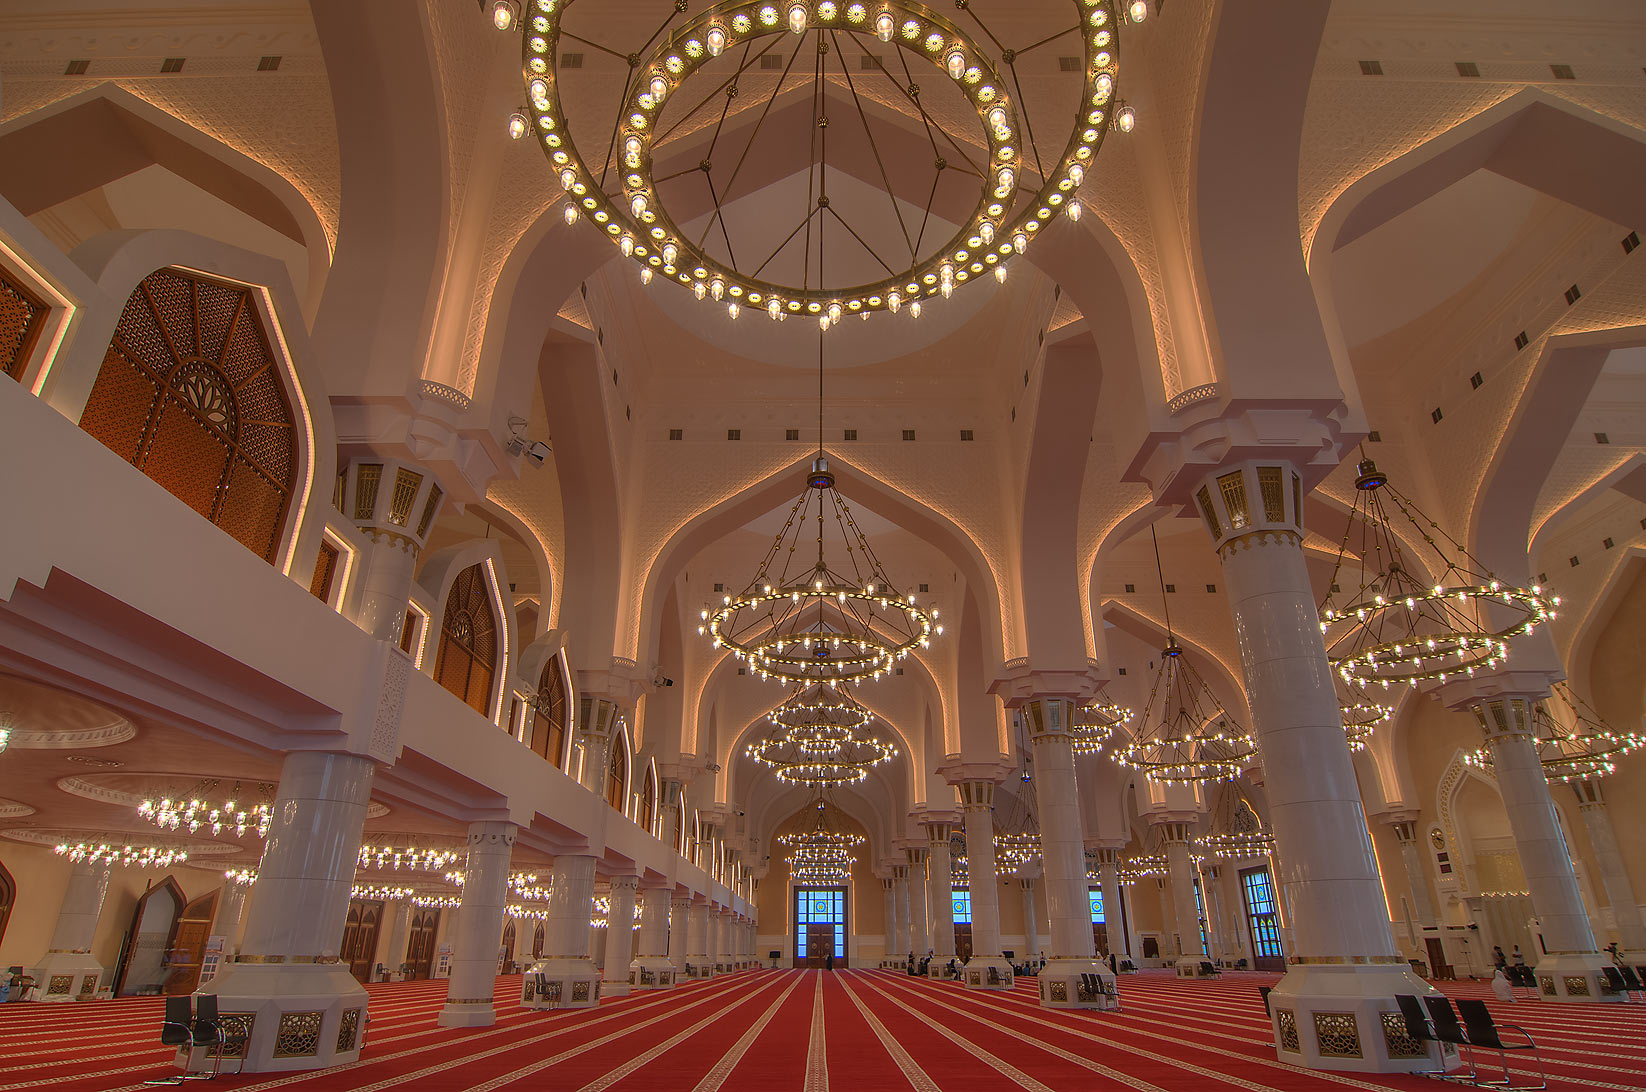 Evening lights in State Mosque (Sheikh Muhammad Ibn Abdul Wahhab Mosque). Doha, Qatar